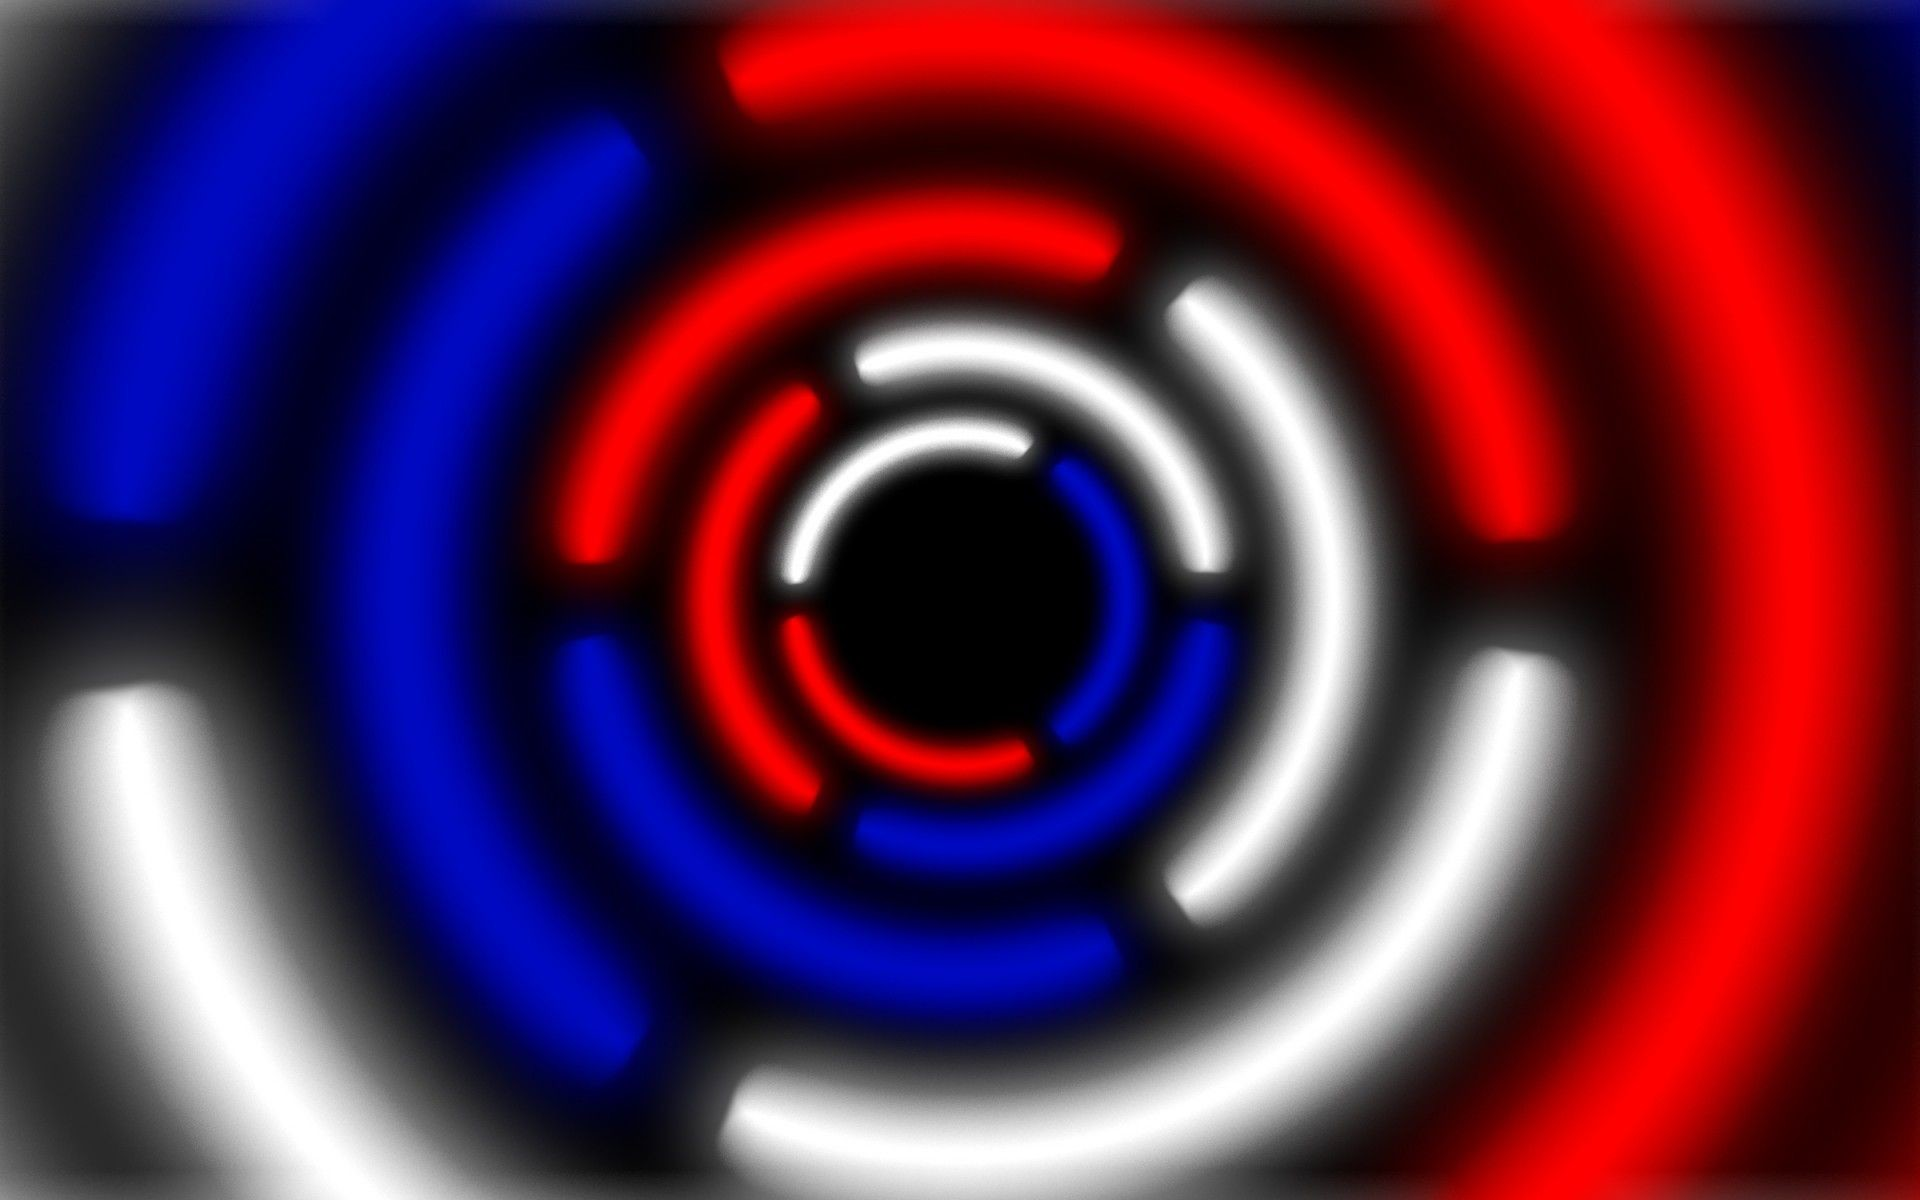 Circle krug Russia russia white blue red white blue red abstract .